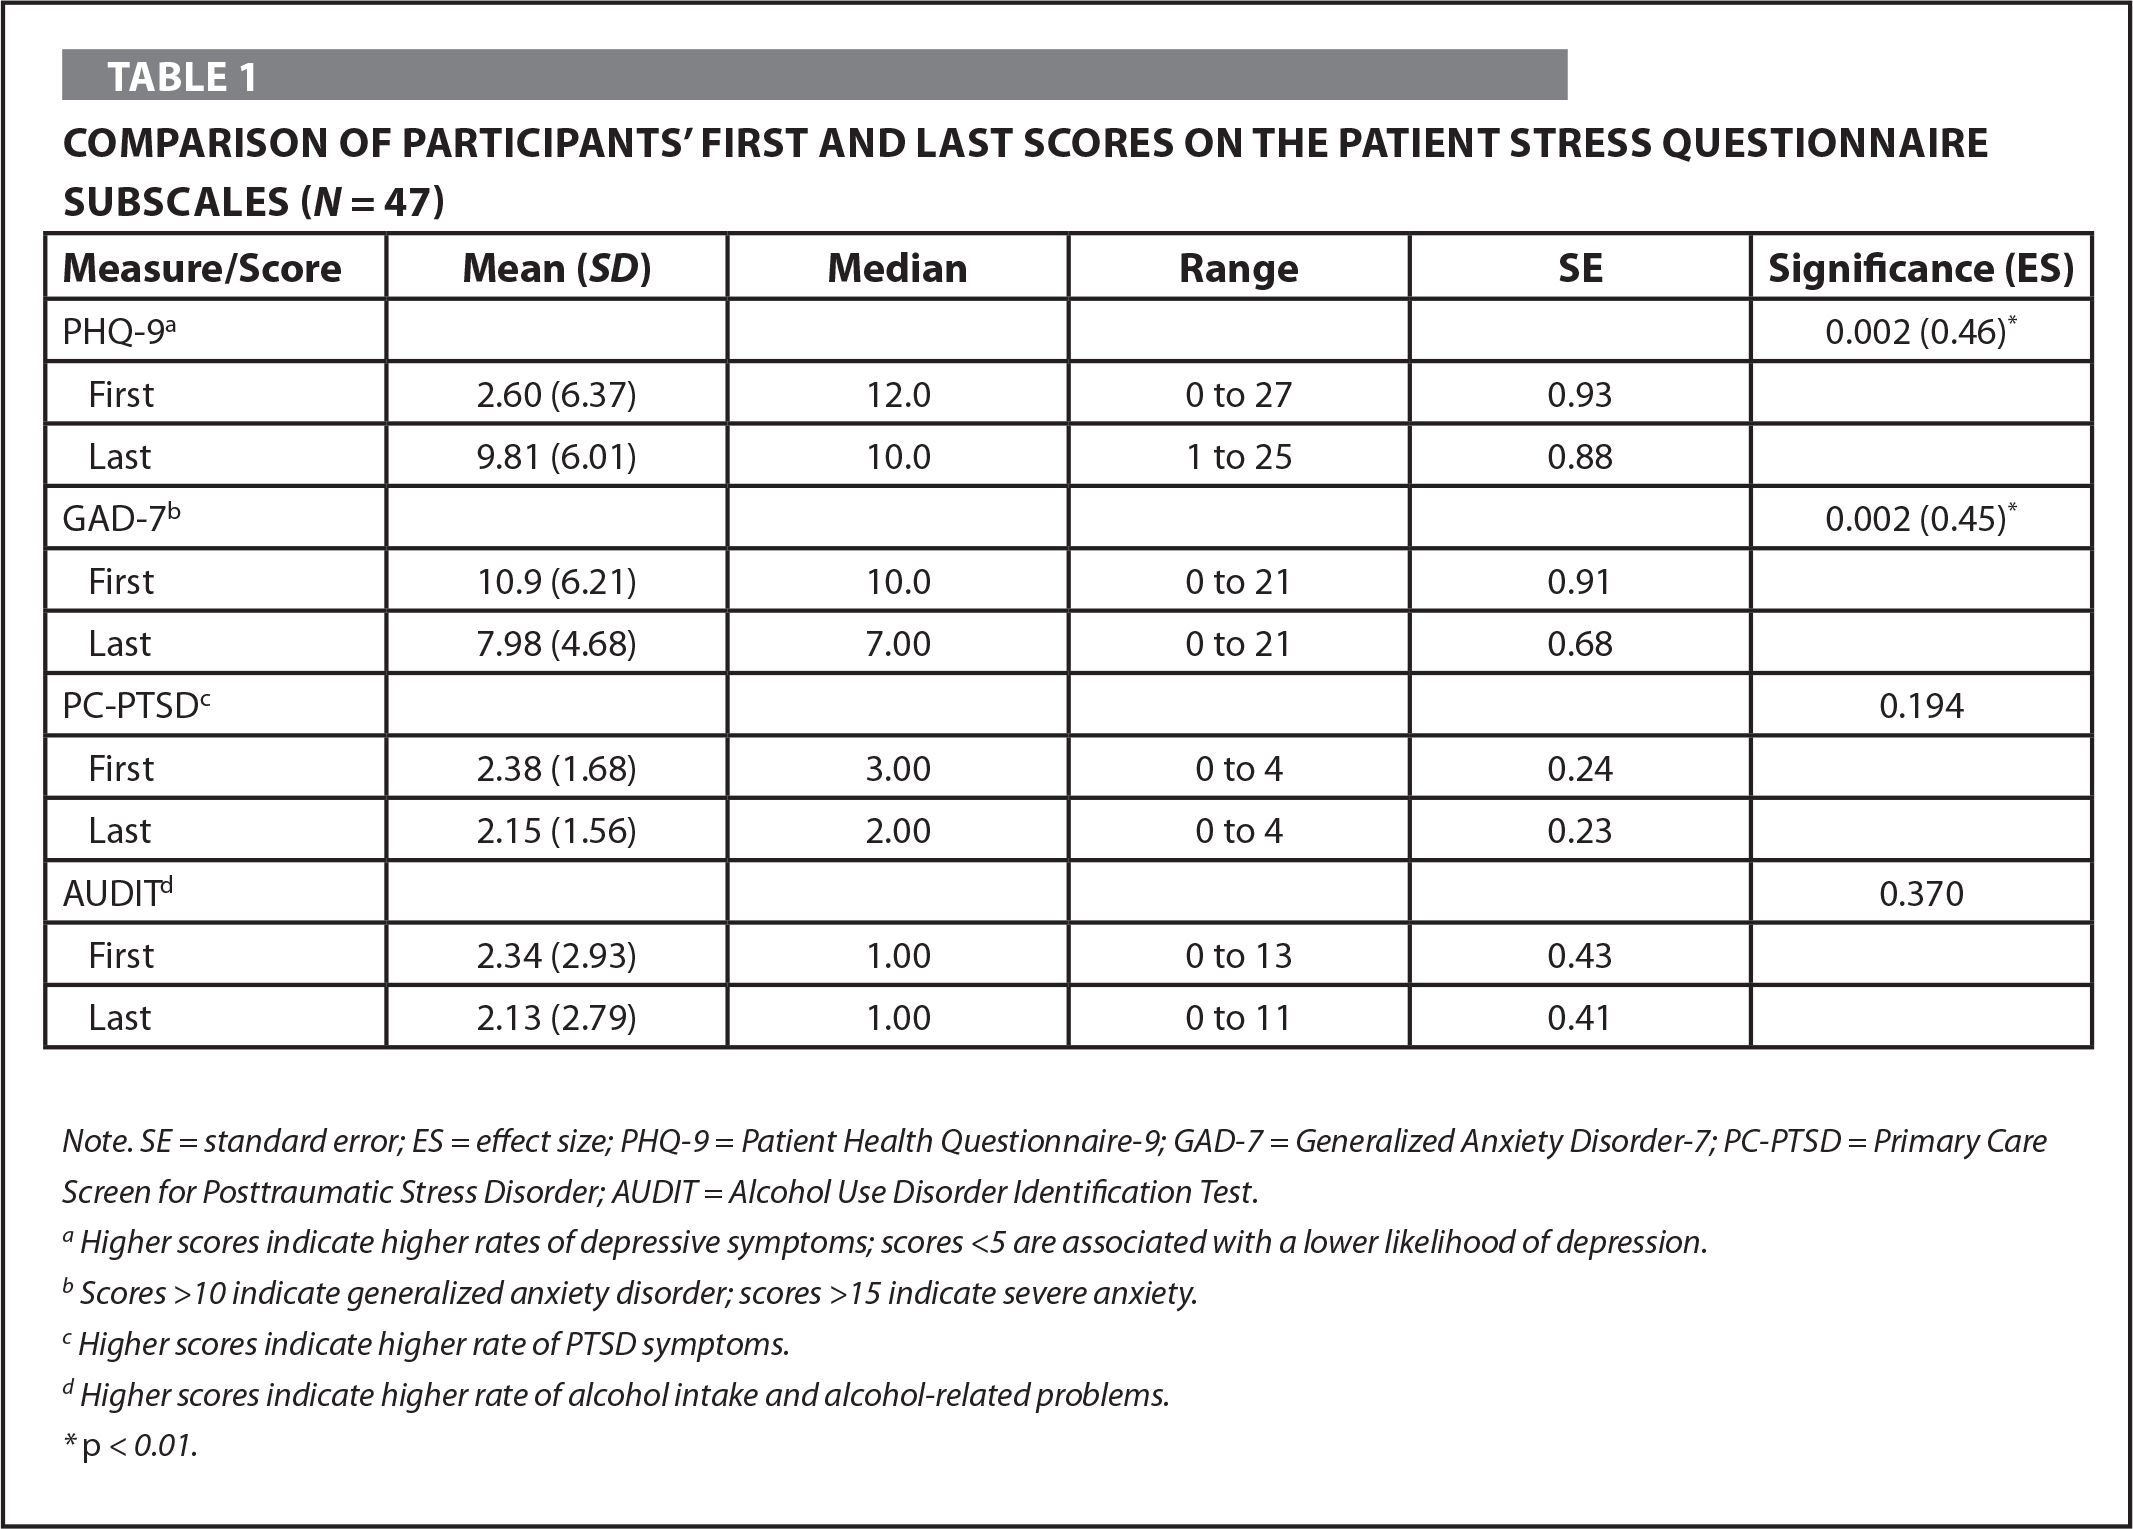 Comparison of Participants' First and Last Scores on the Patient Stress Questionnaire Subscales (N = 47)